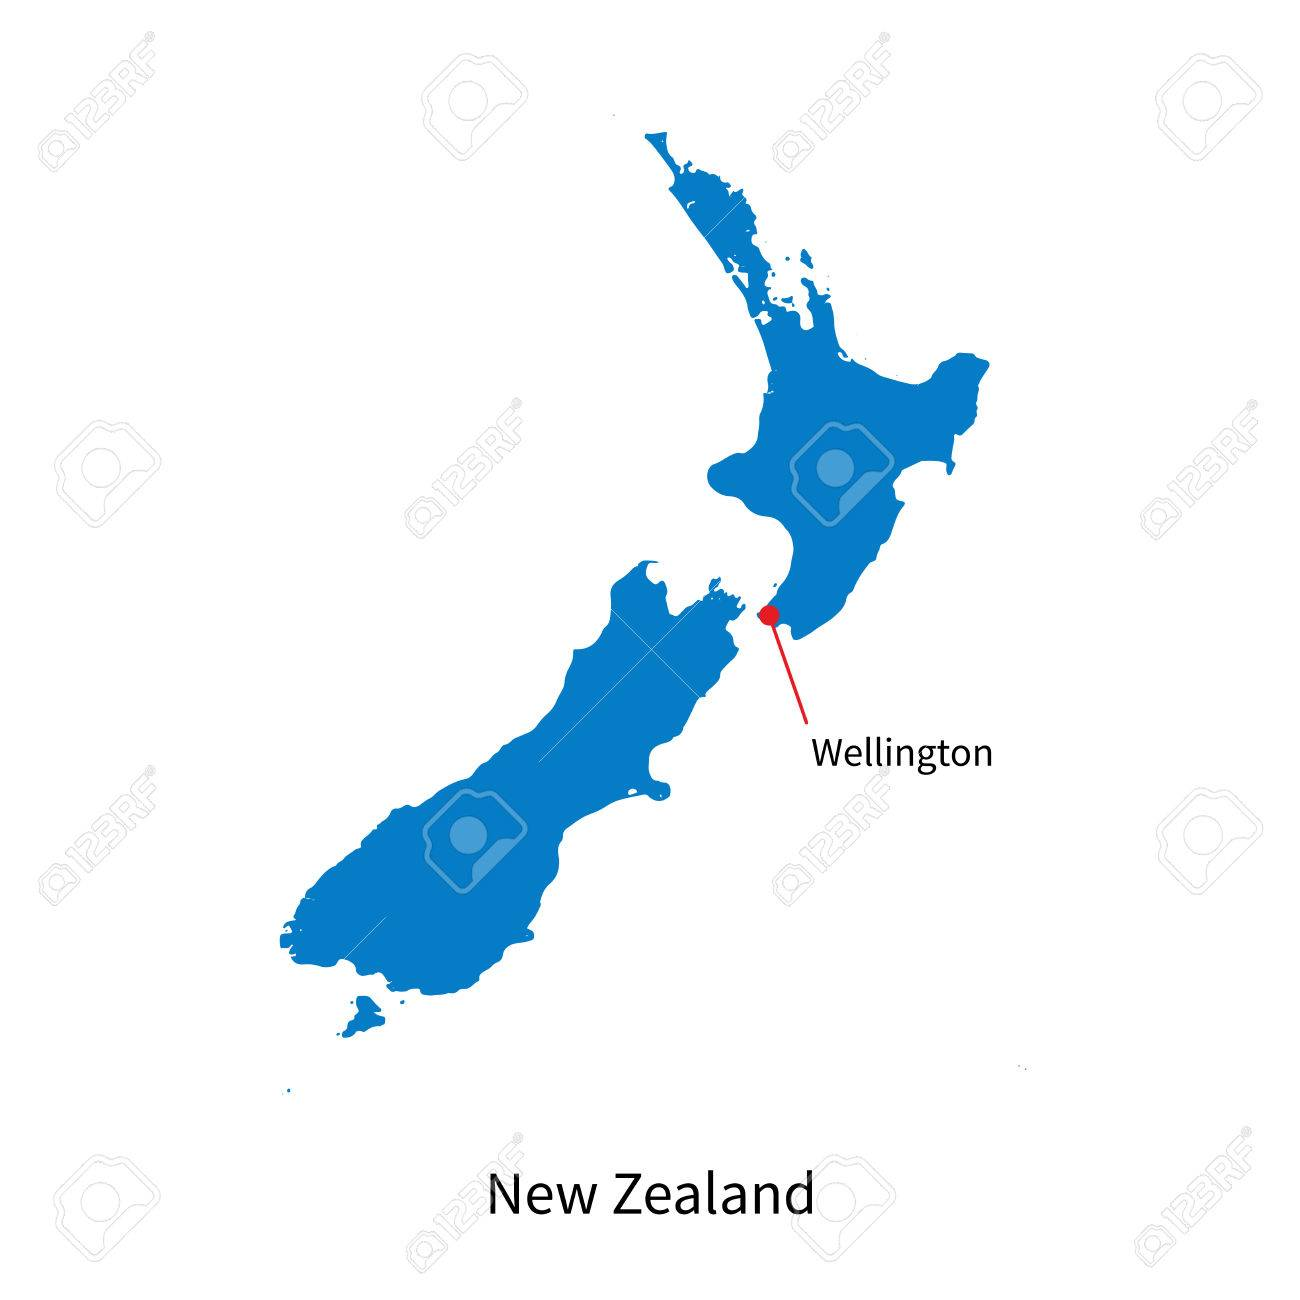 Map Of New Zealand Wellington.Detailed Map Of New Zealand And Capital City Wellington